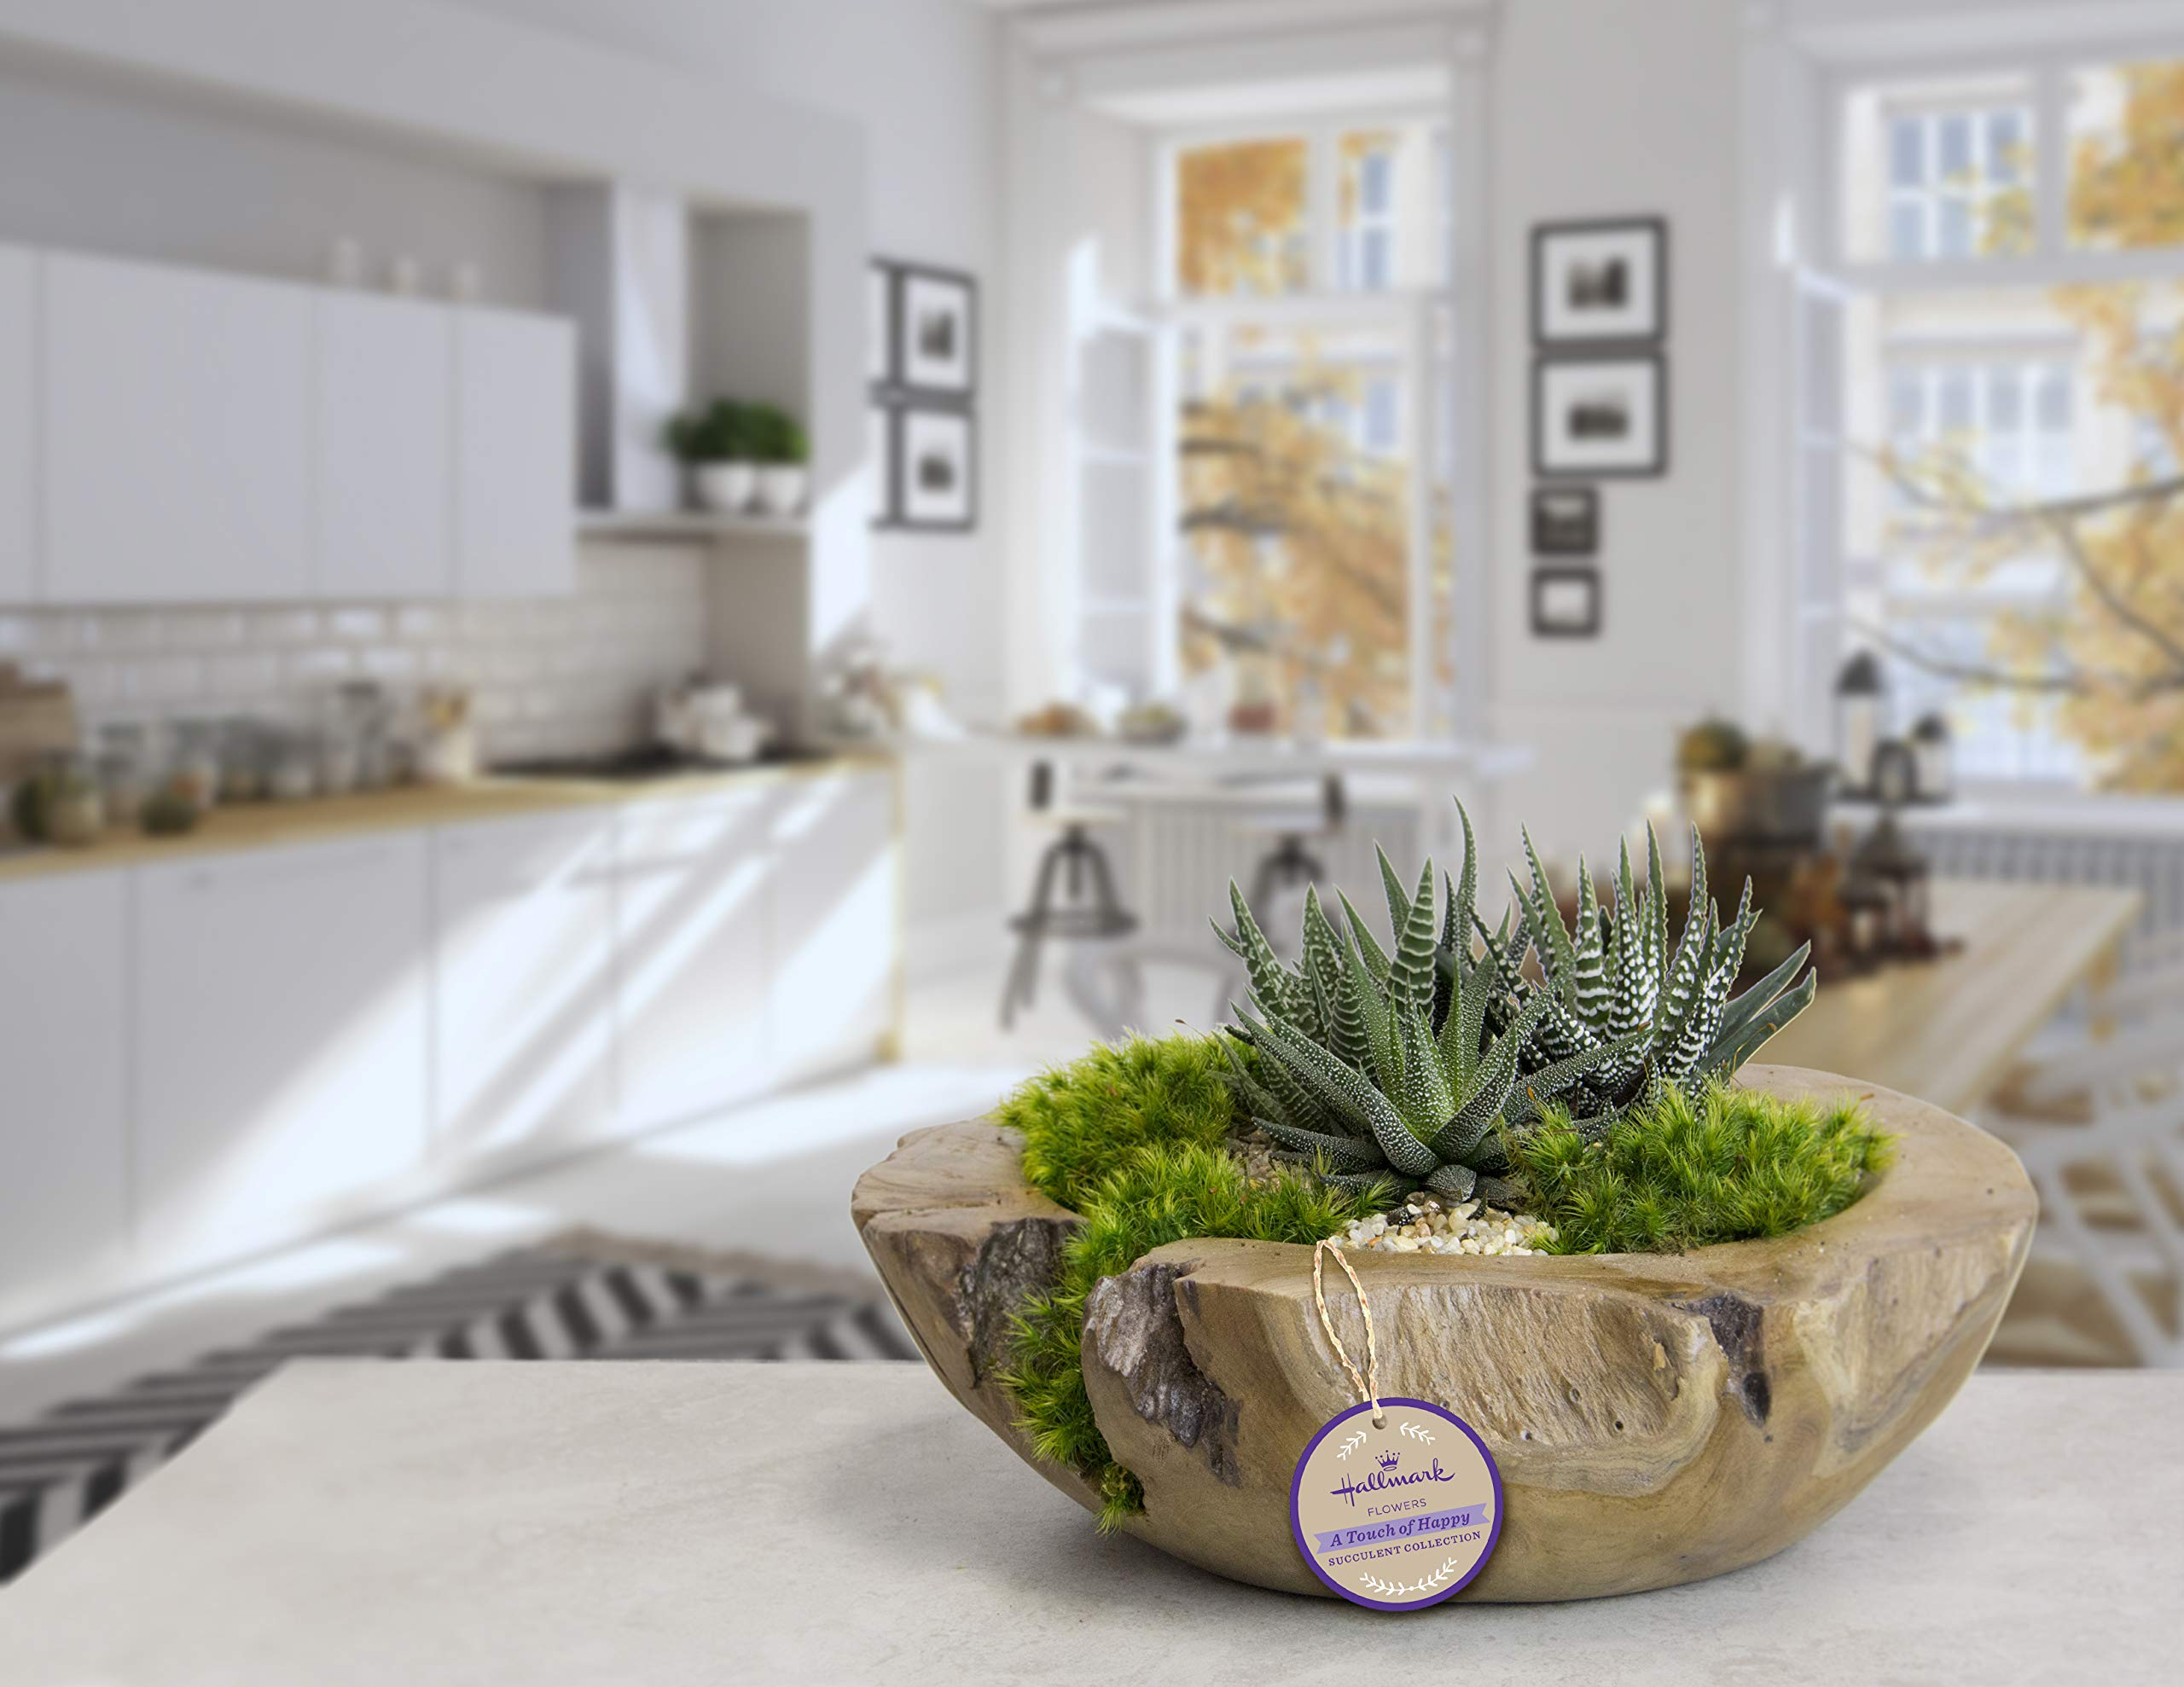 Live Succulent Garden in 10'' Teak Bowl Container, From Hallmark Flowers by Hallmark Flowers (Image #2)